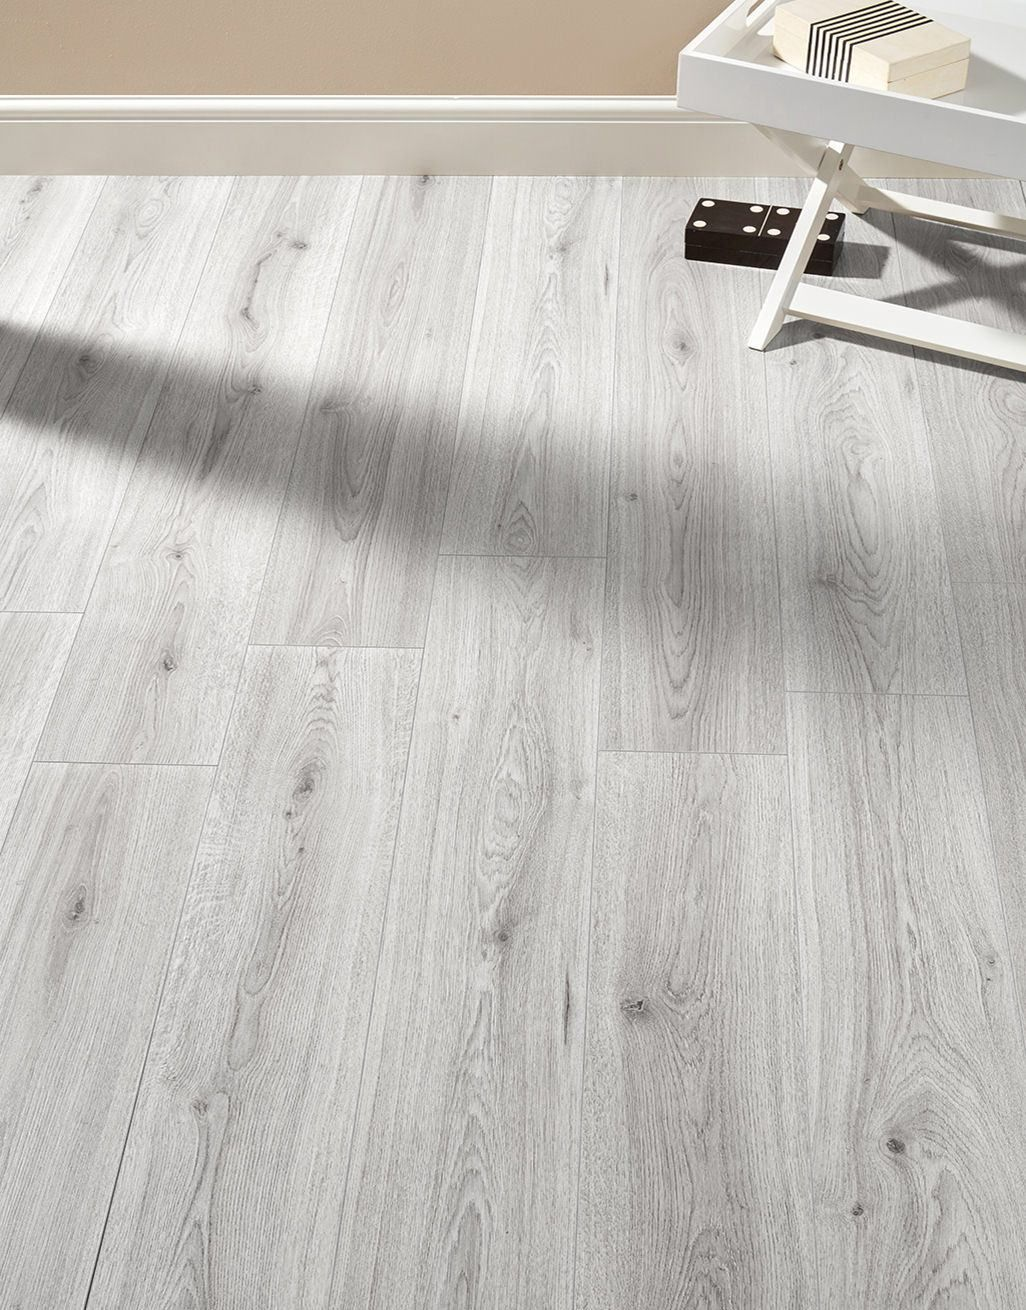 Farmhouse Light Grey Oak Laminate Flooring Direct Wood Flooring